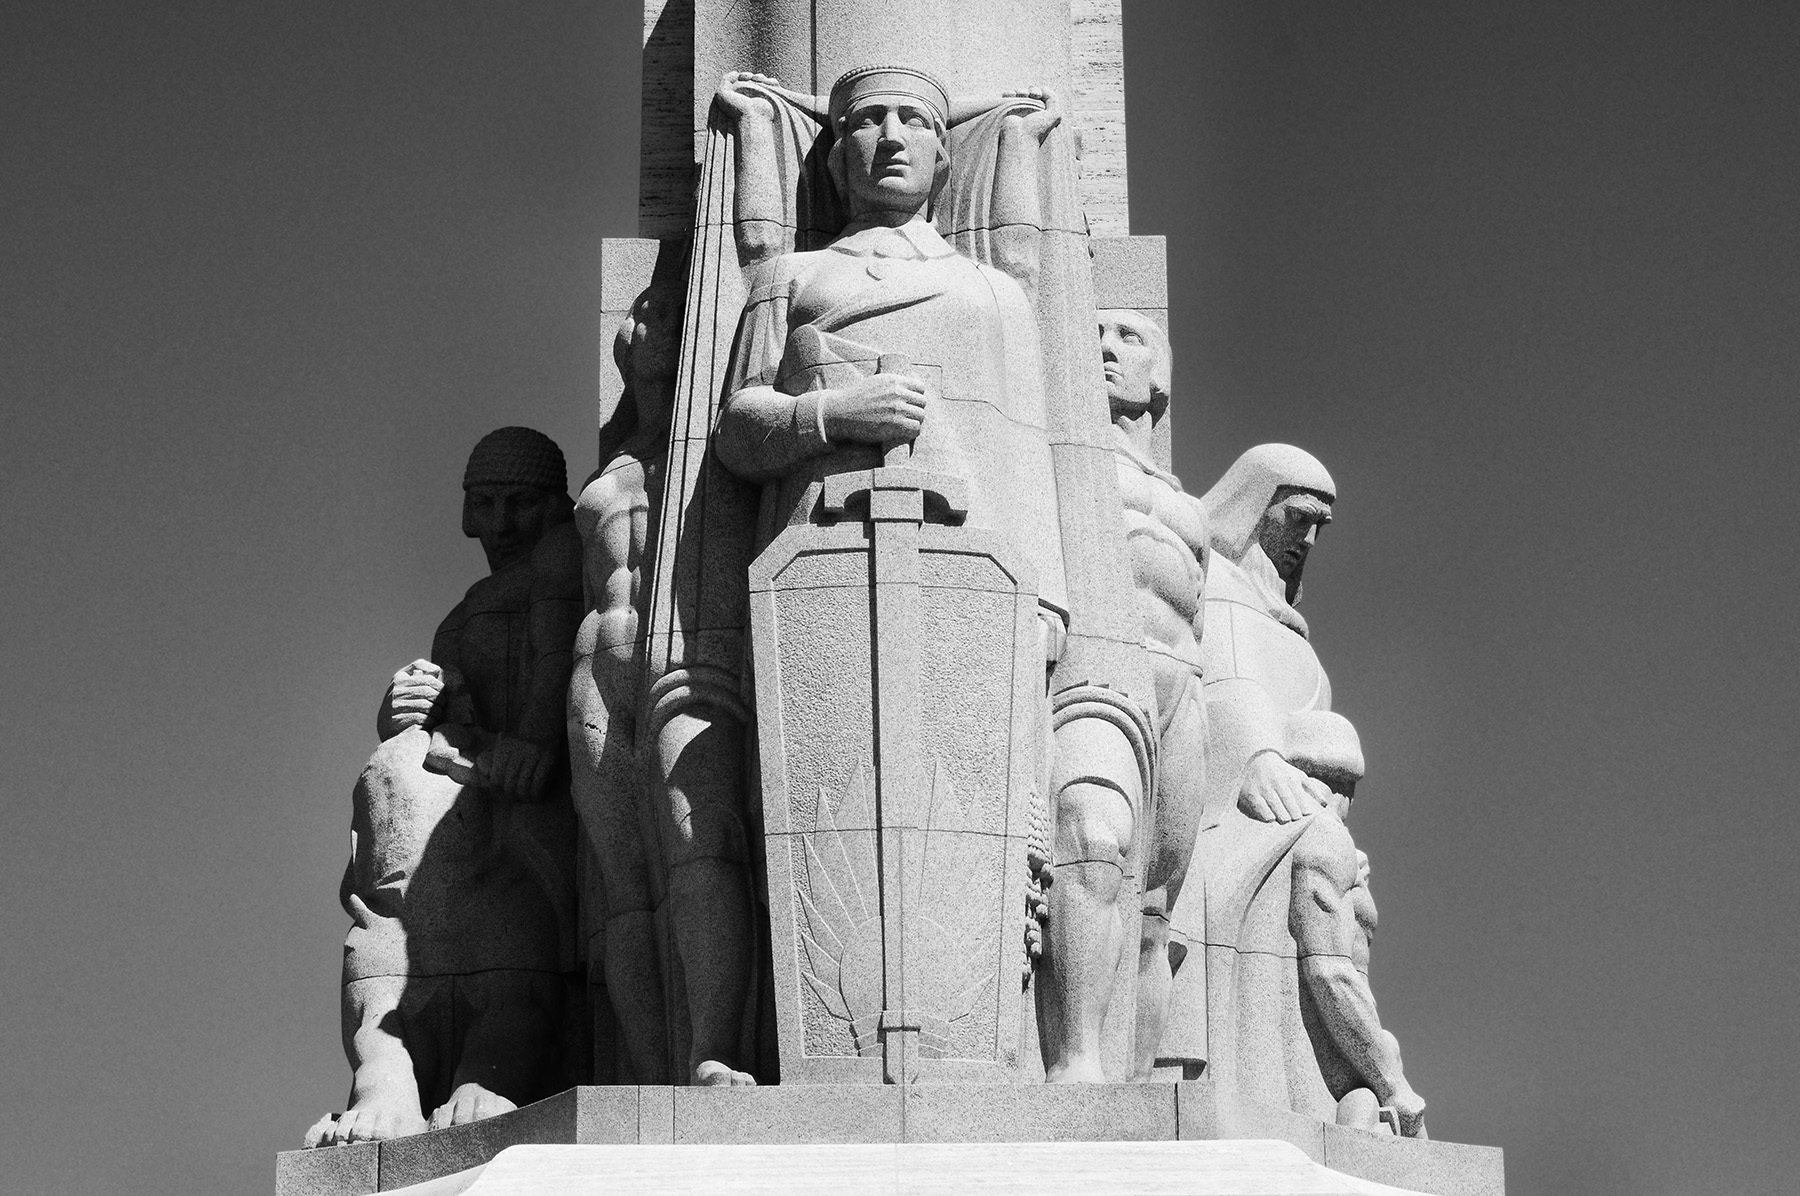 Guard of the Fatherland statue atop base of Latvian Freedom Monument. Photo: Wikimedia